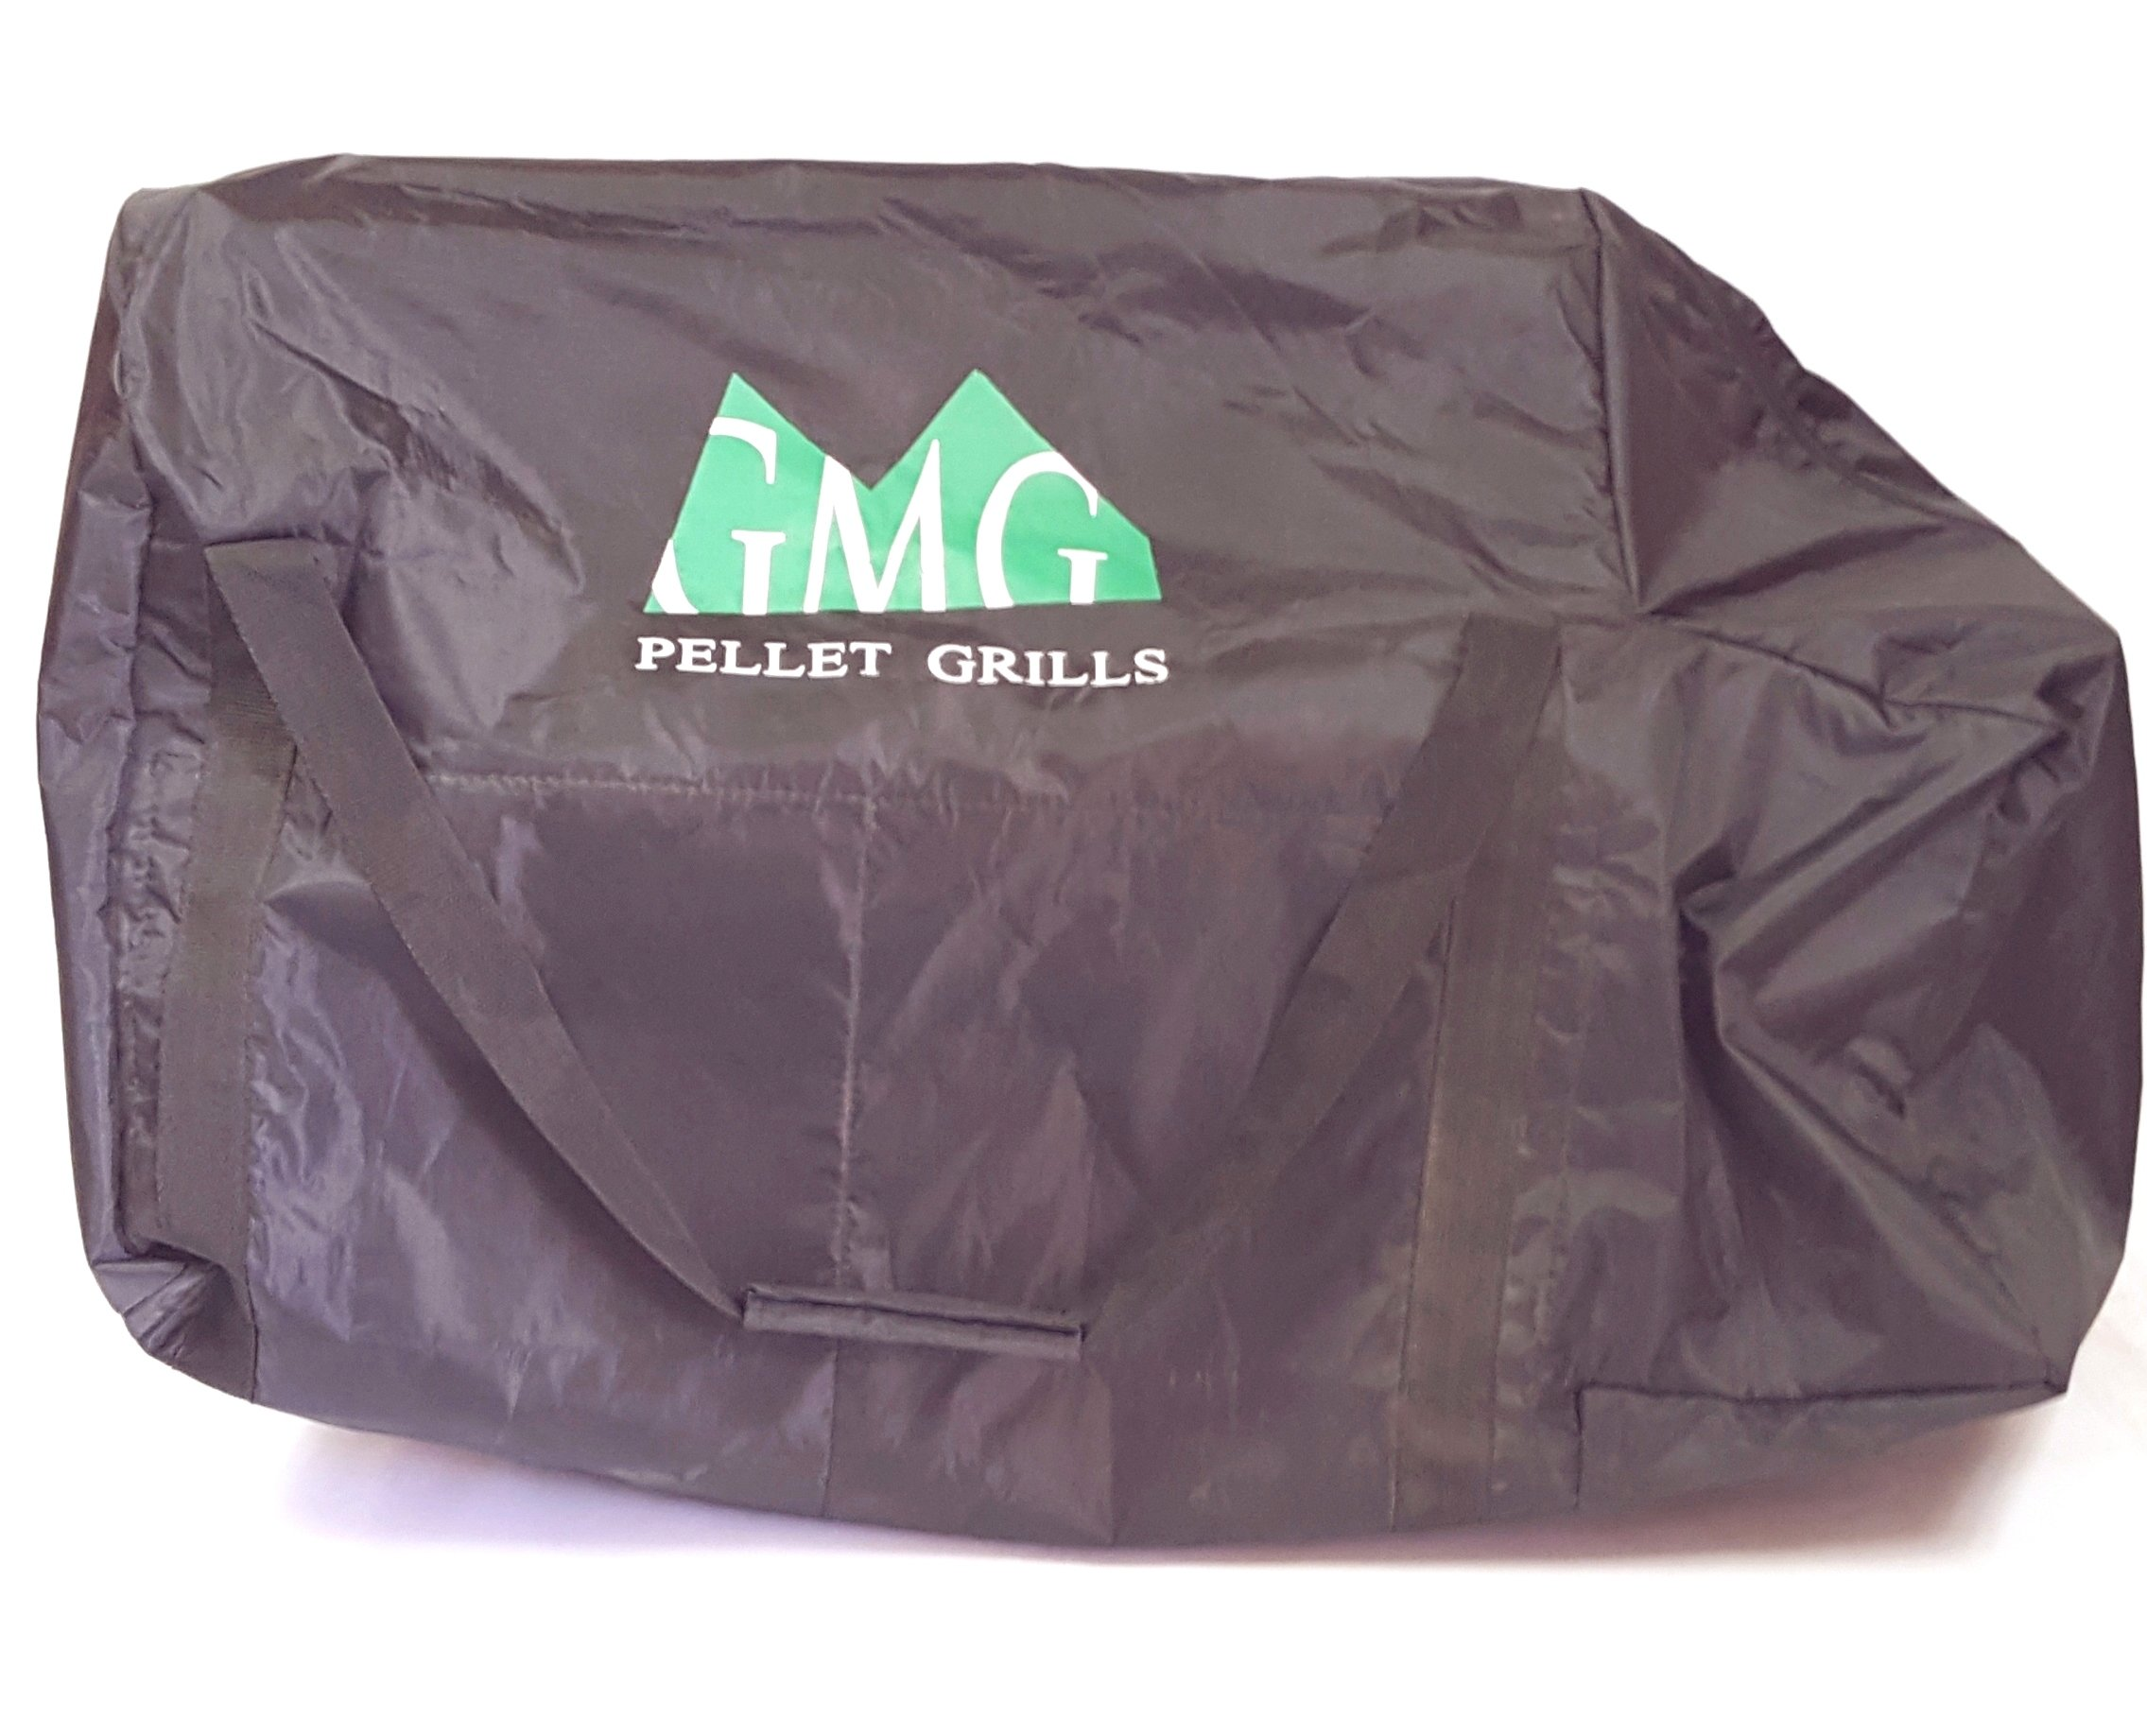 Green Mountain Grills Davy Crockett Pellet Grill PACKAGE, Cover and Tote included - WIFI enabled by Green Mountain Grill (Image #1)